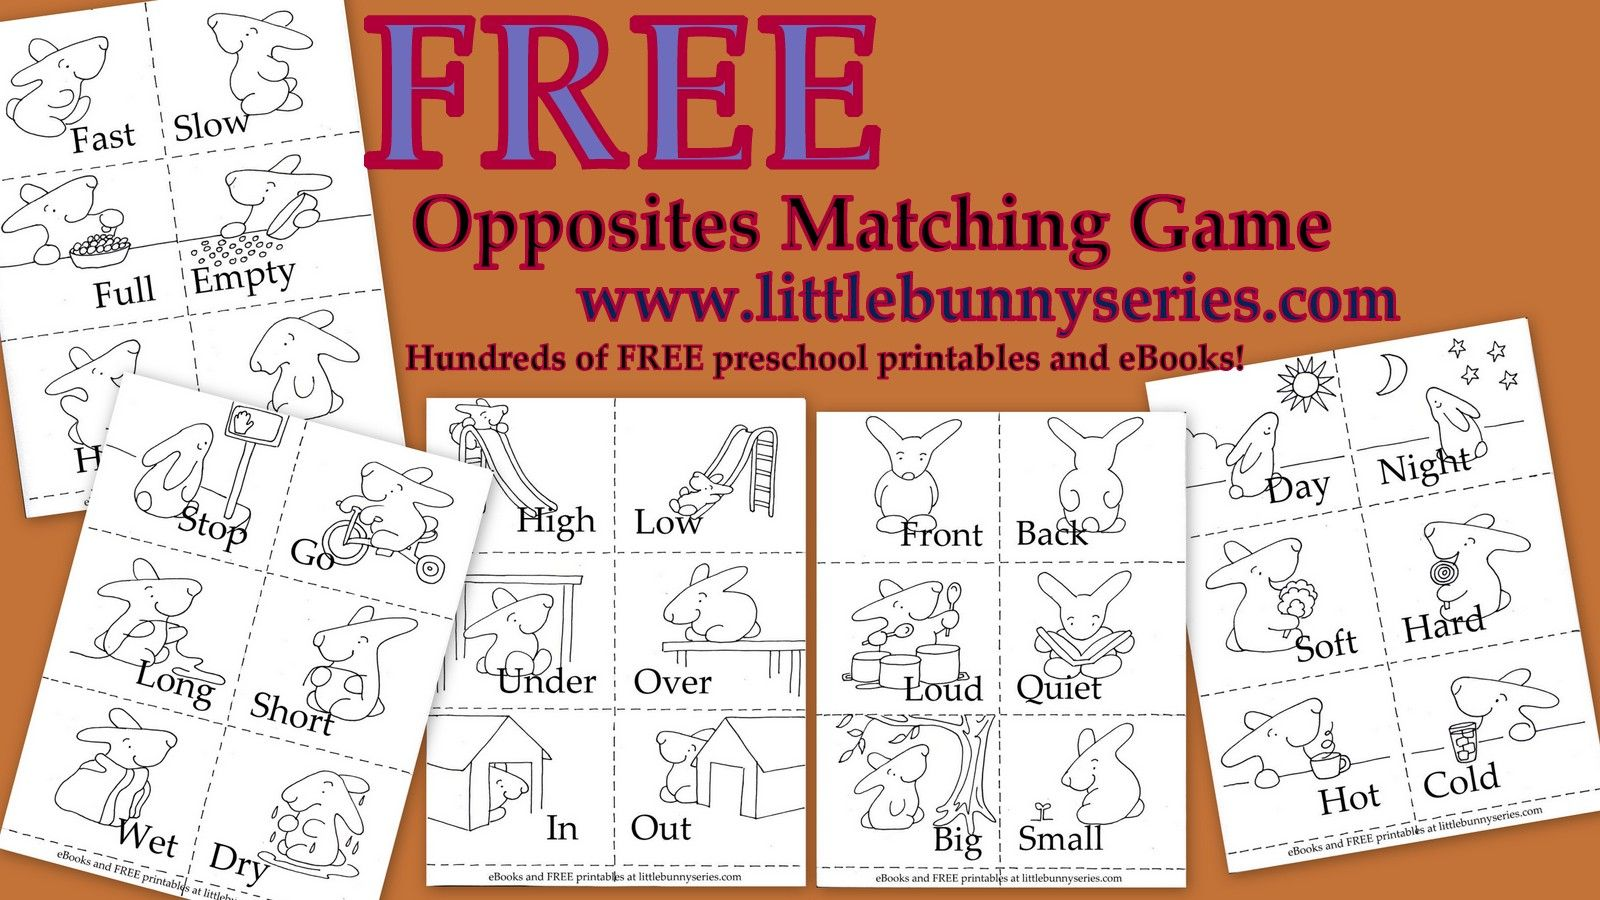 Ebooks And Hundreds Of Free Preschool Printables At